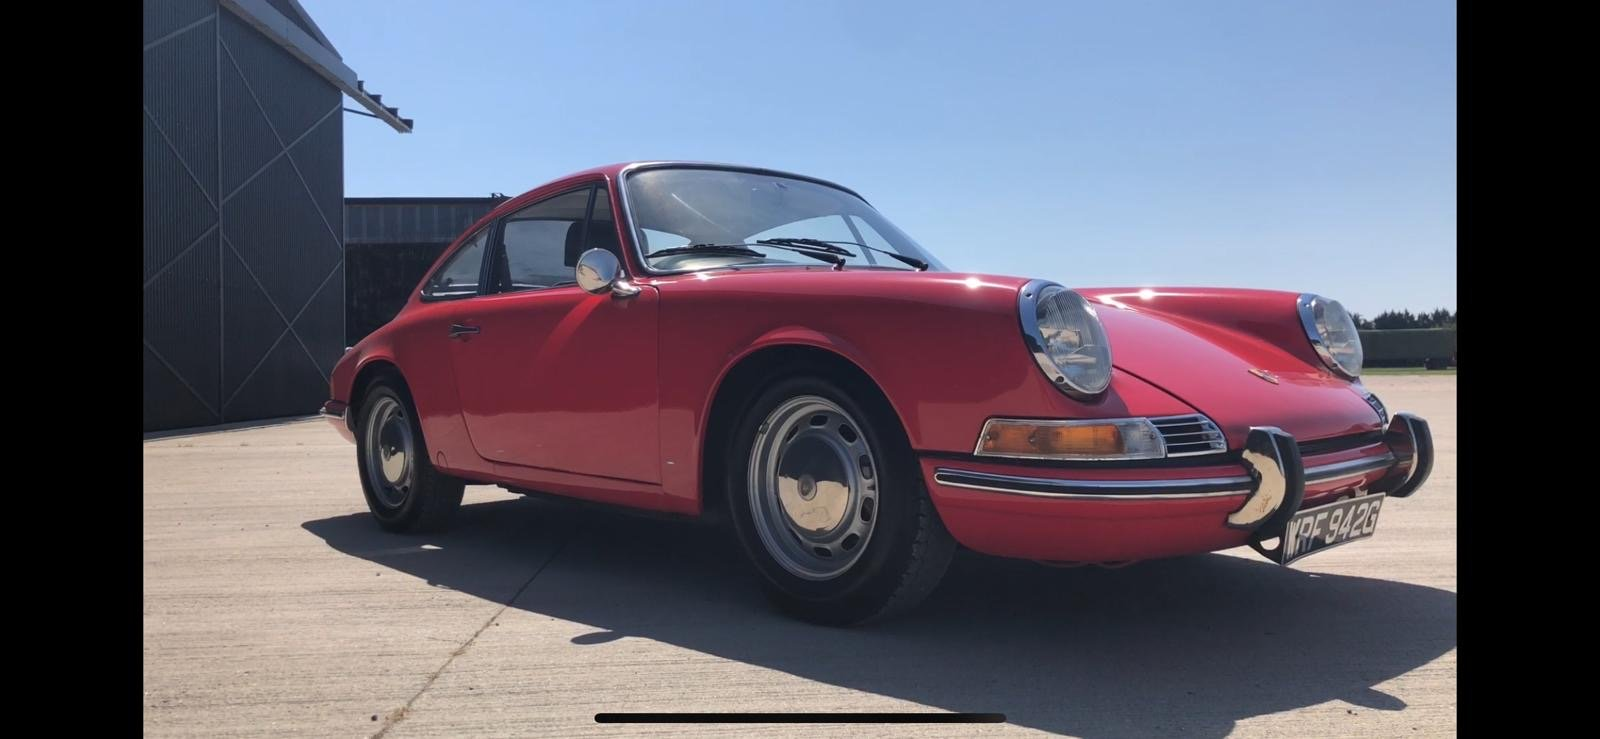 Porsche 911T RHD 1969 Sportamatic Coupe Red For Sale (picture 7 of 9)